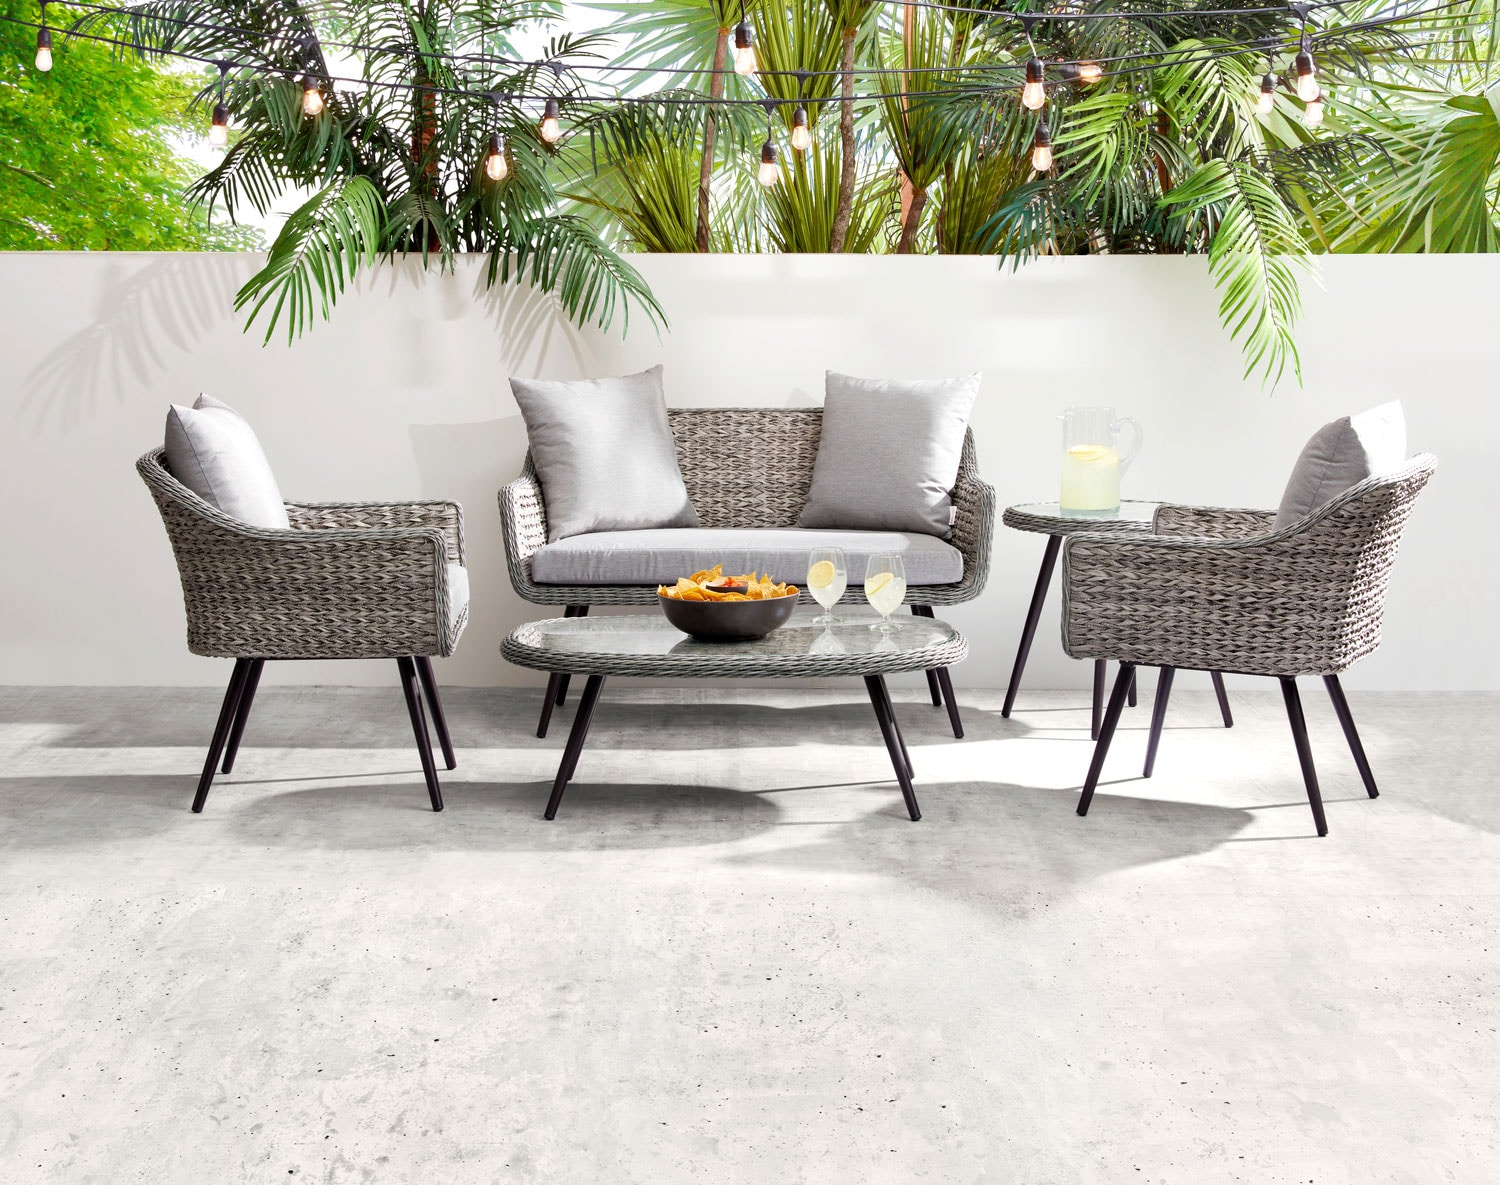 The Palm Outdoor Collection